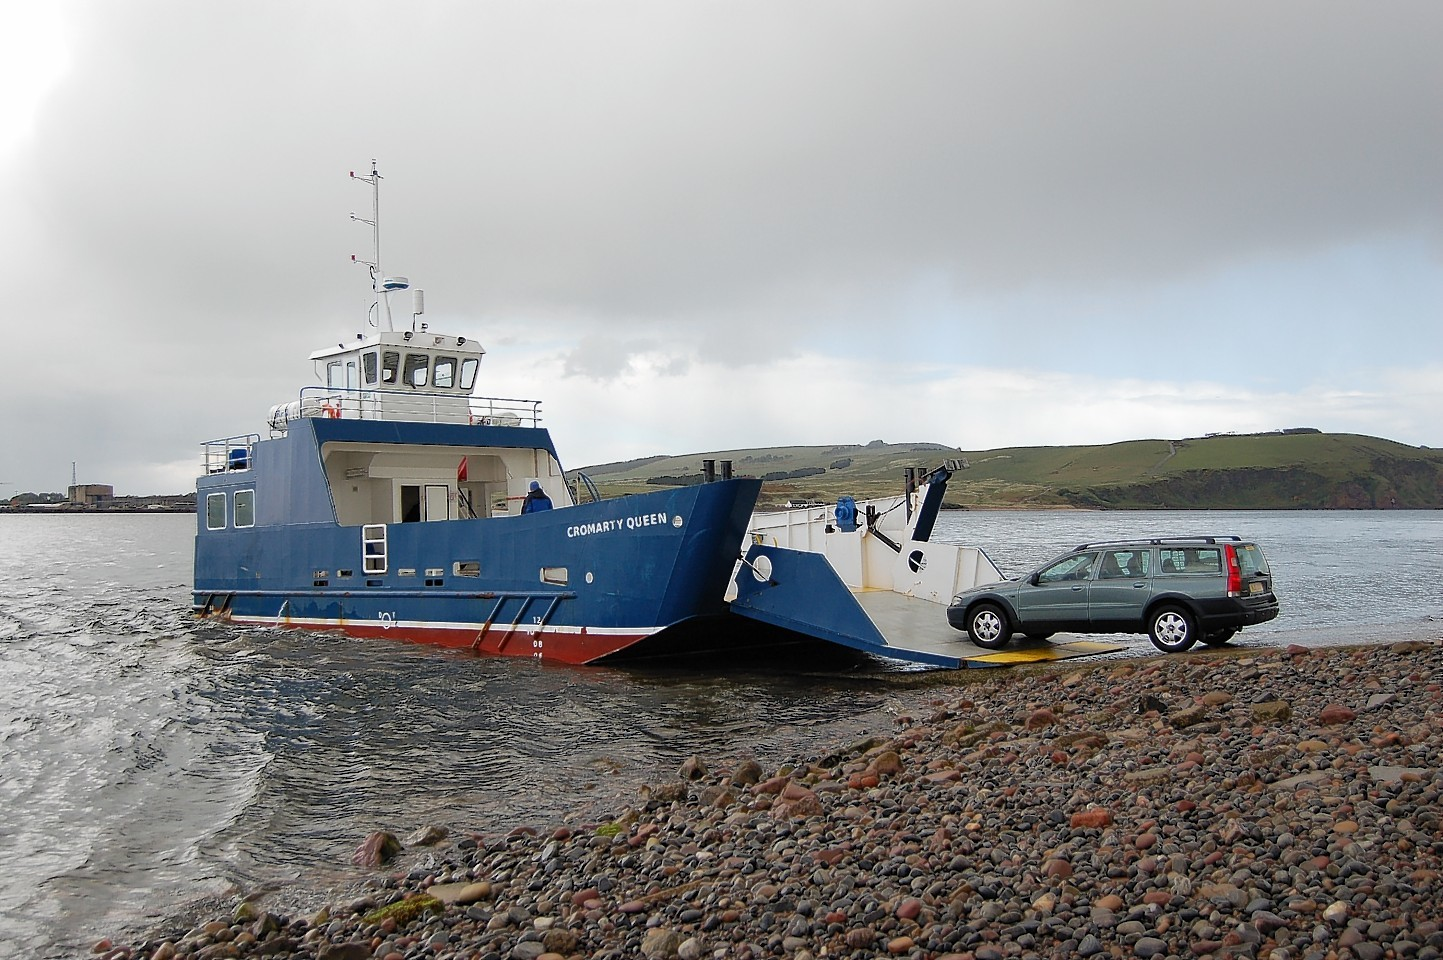 The Cromarty to Nigg ferry